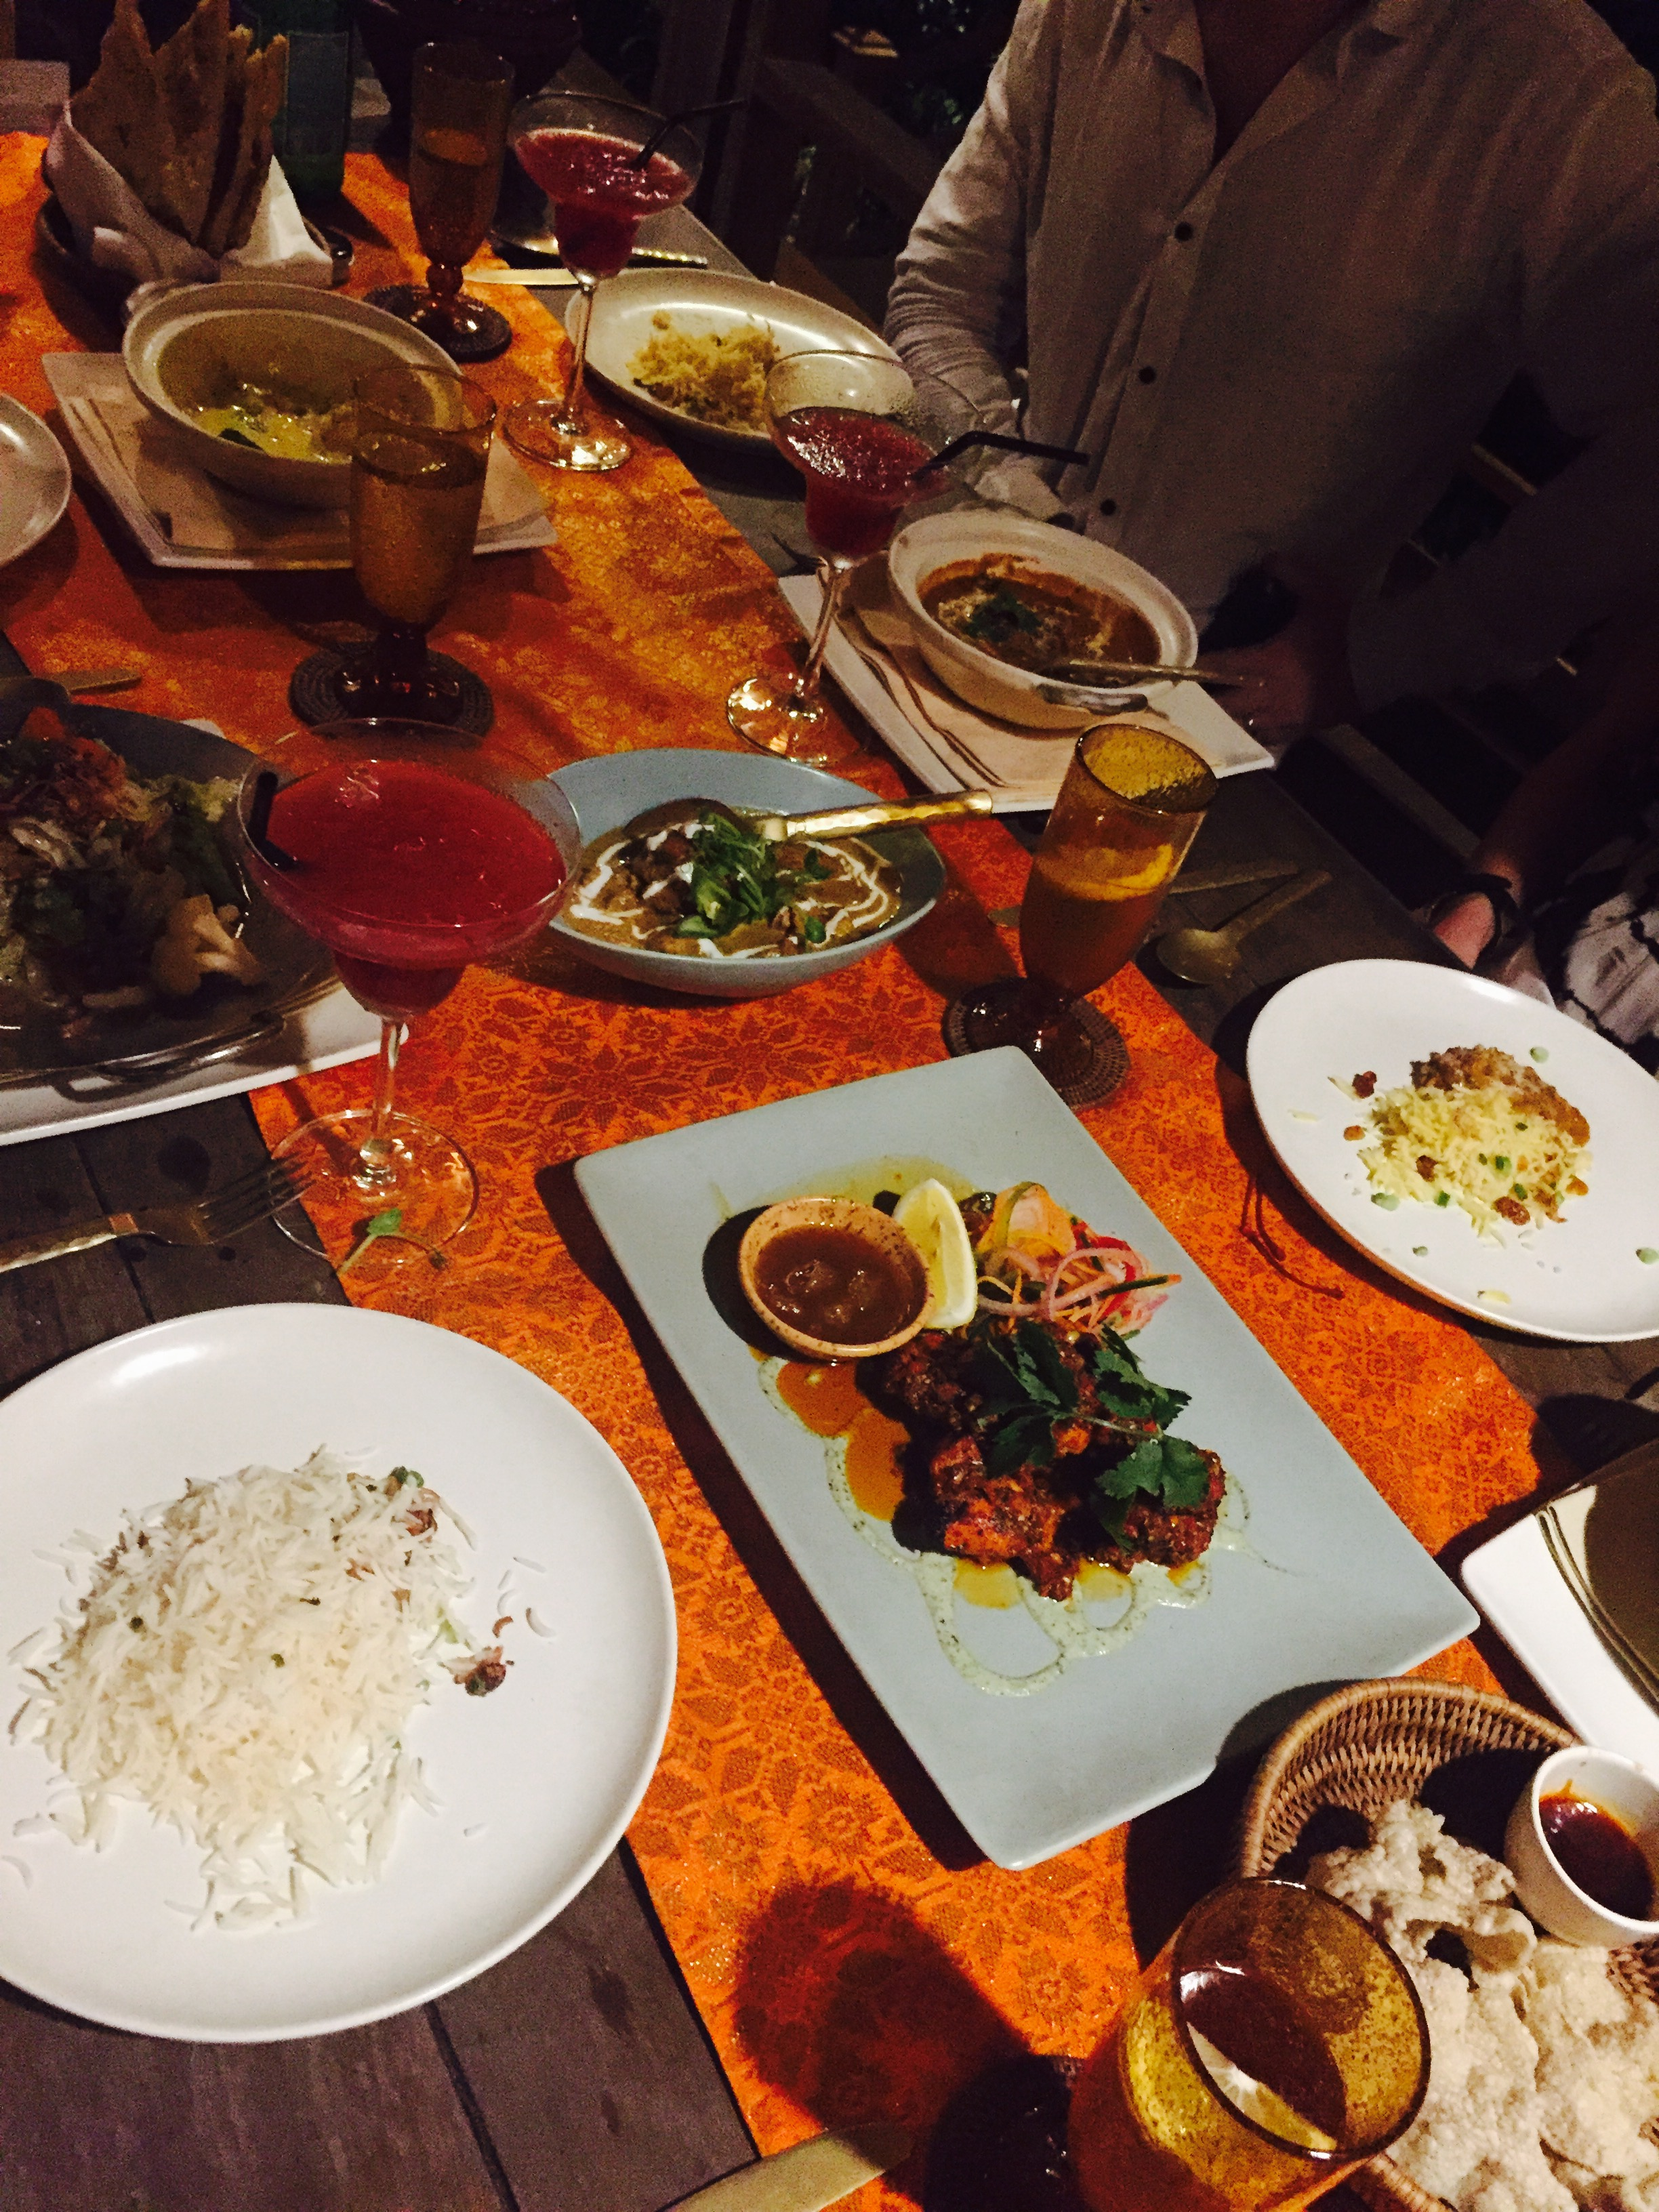 Seriously one of the most amazing meals I've ever had. The Gulai House at The Datai Resort